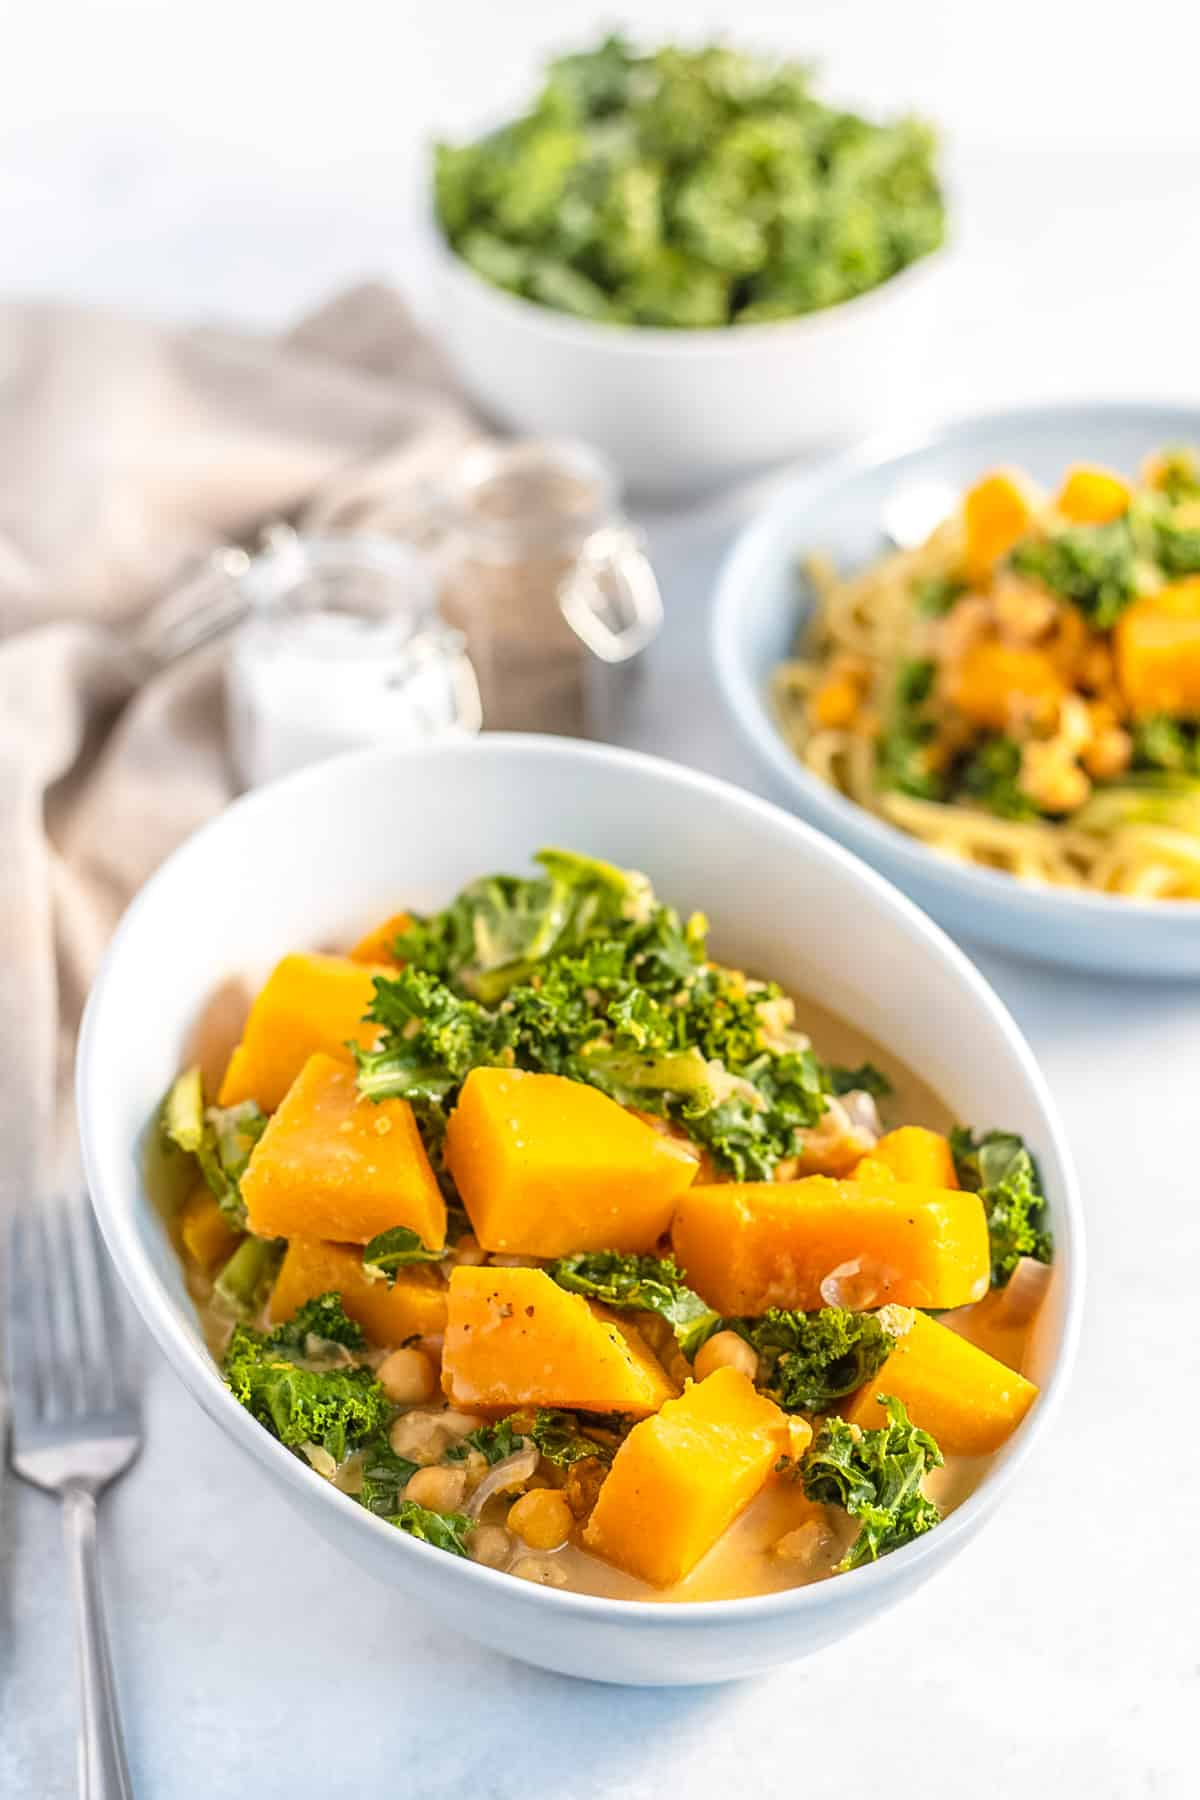 Bowl of vegetarian curry with butternut squash, kale, and chickpeas.